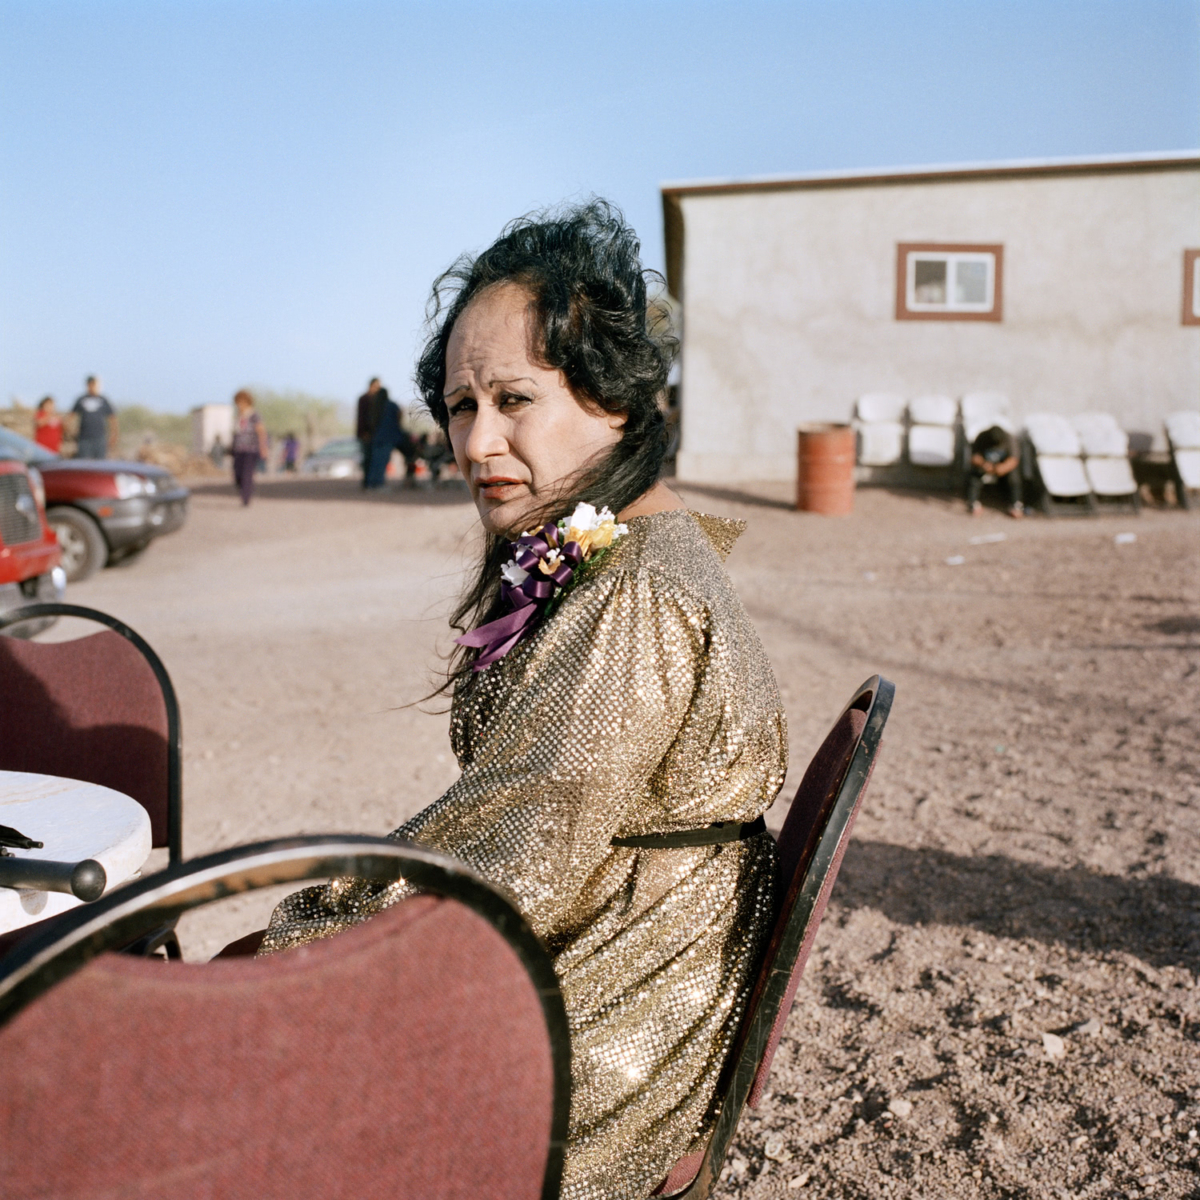 1 Klayla, twin of Terri,  Arizona , US  2012